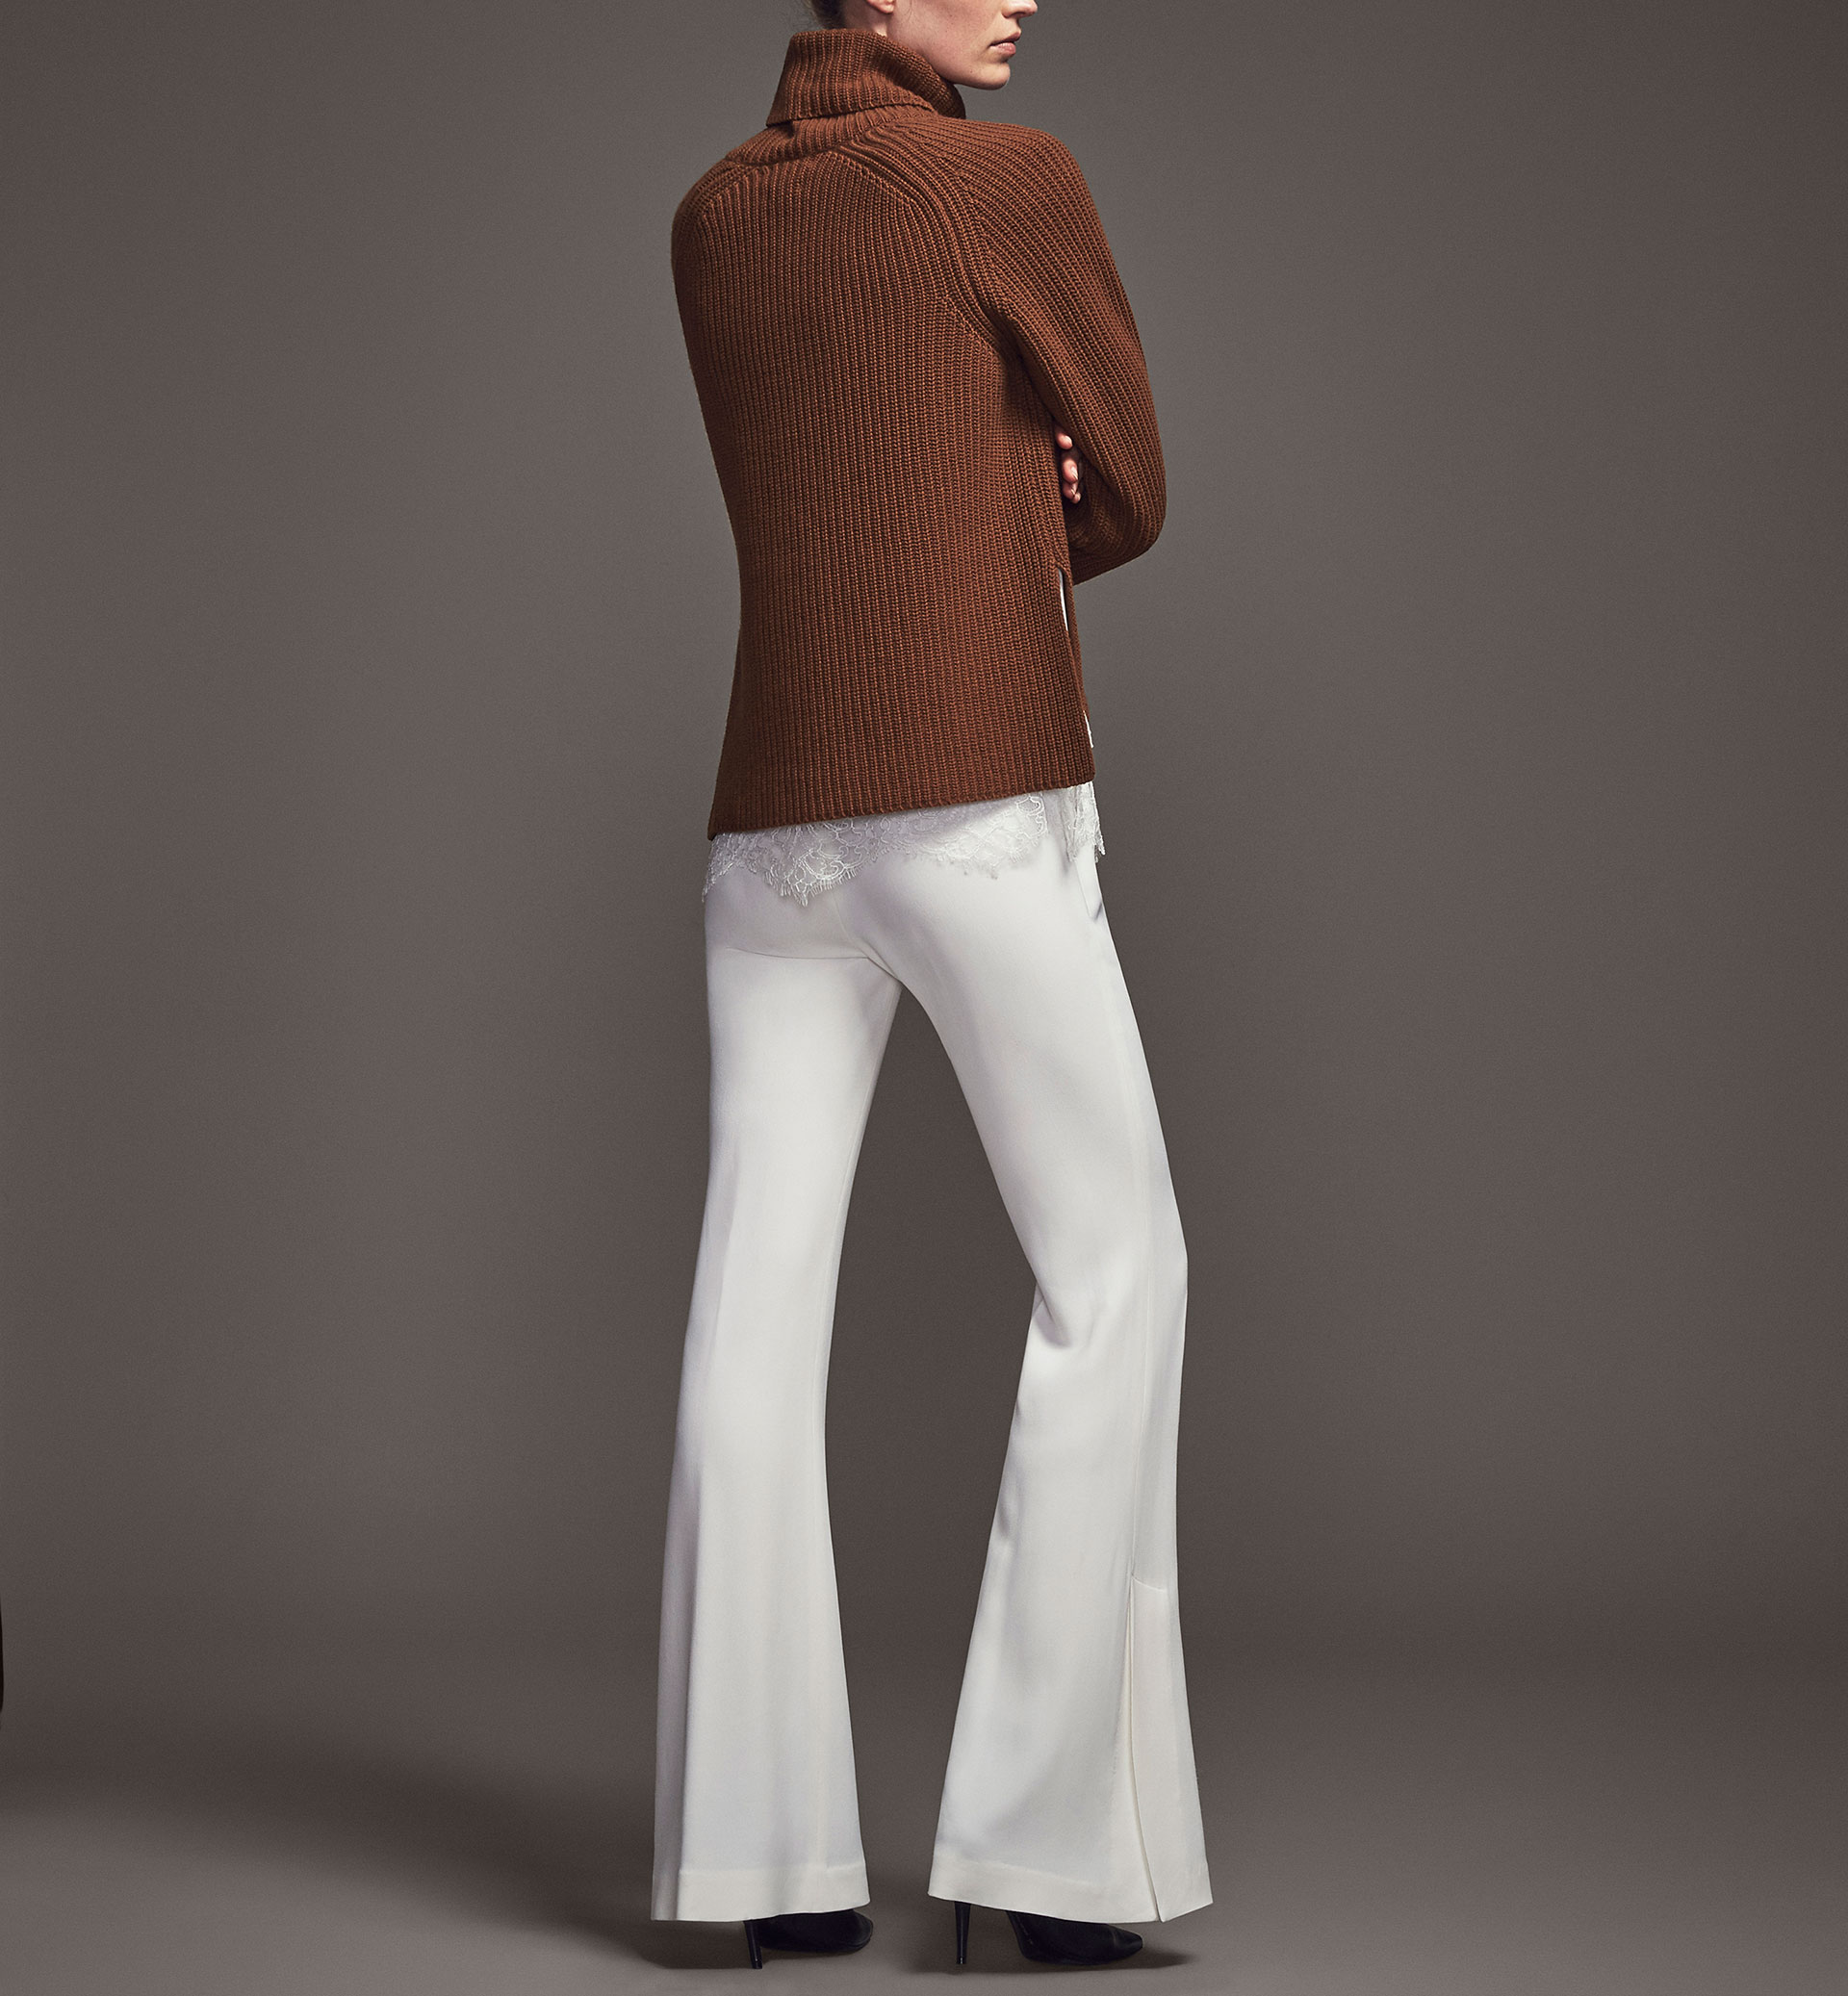 LIMITED EDITION WHITE TROUSERS WITH SLIT DETAIL